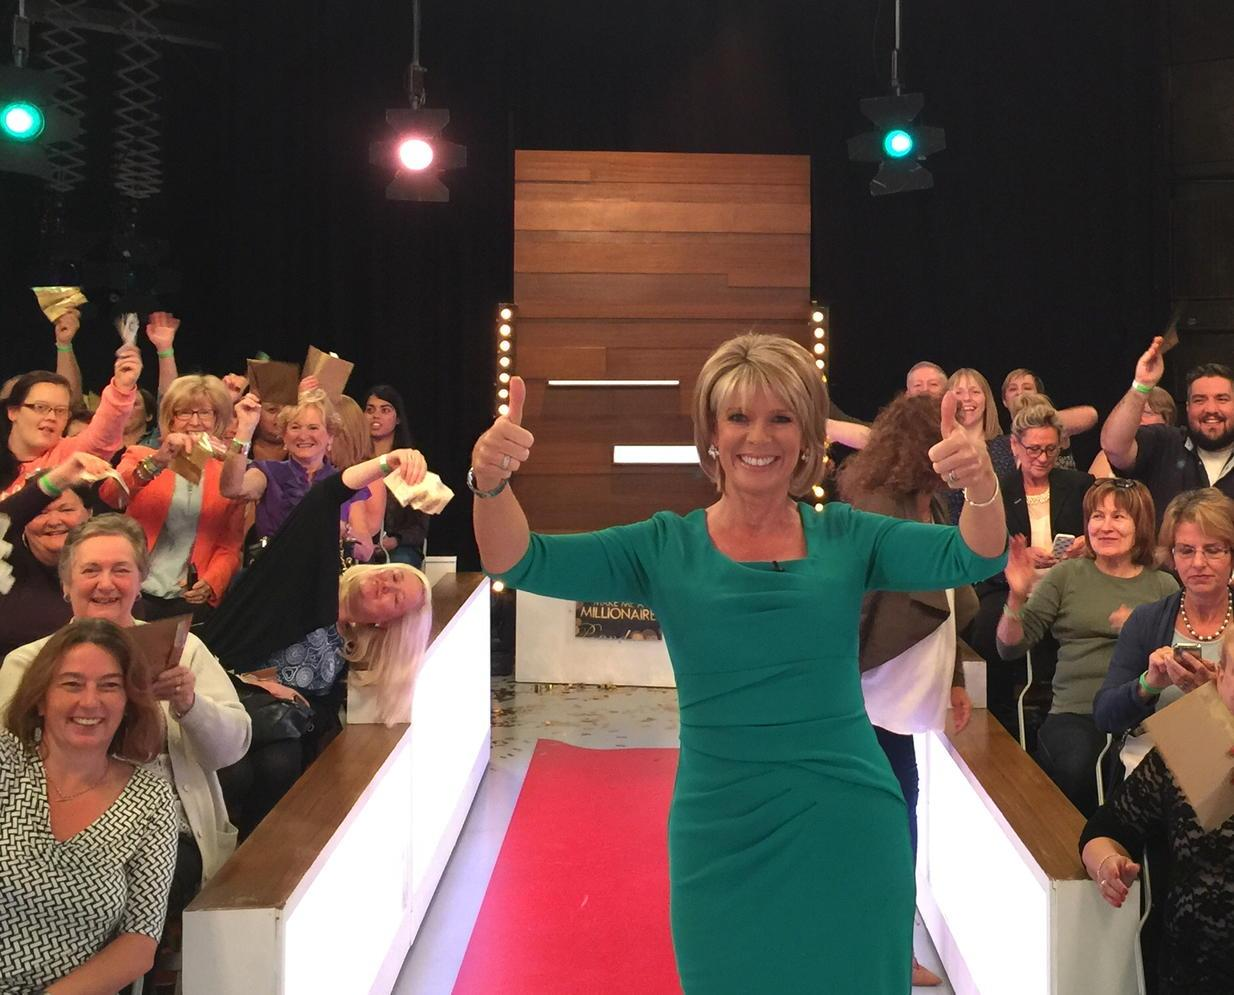 So lovely seeing the smiles when @loosewomen studio audience realised they'd ALL got £100 in their envelope! 😀 http://t.co/1Y2Lp7O5re